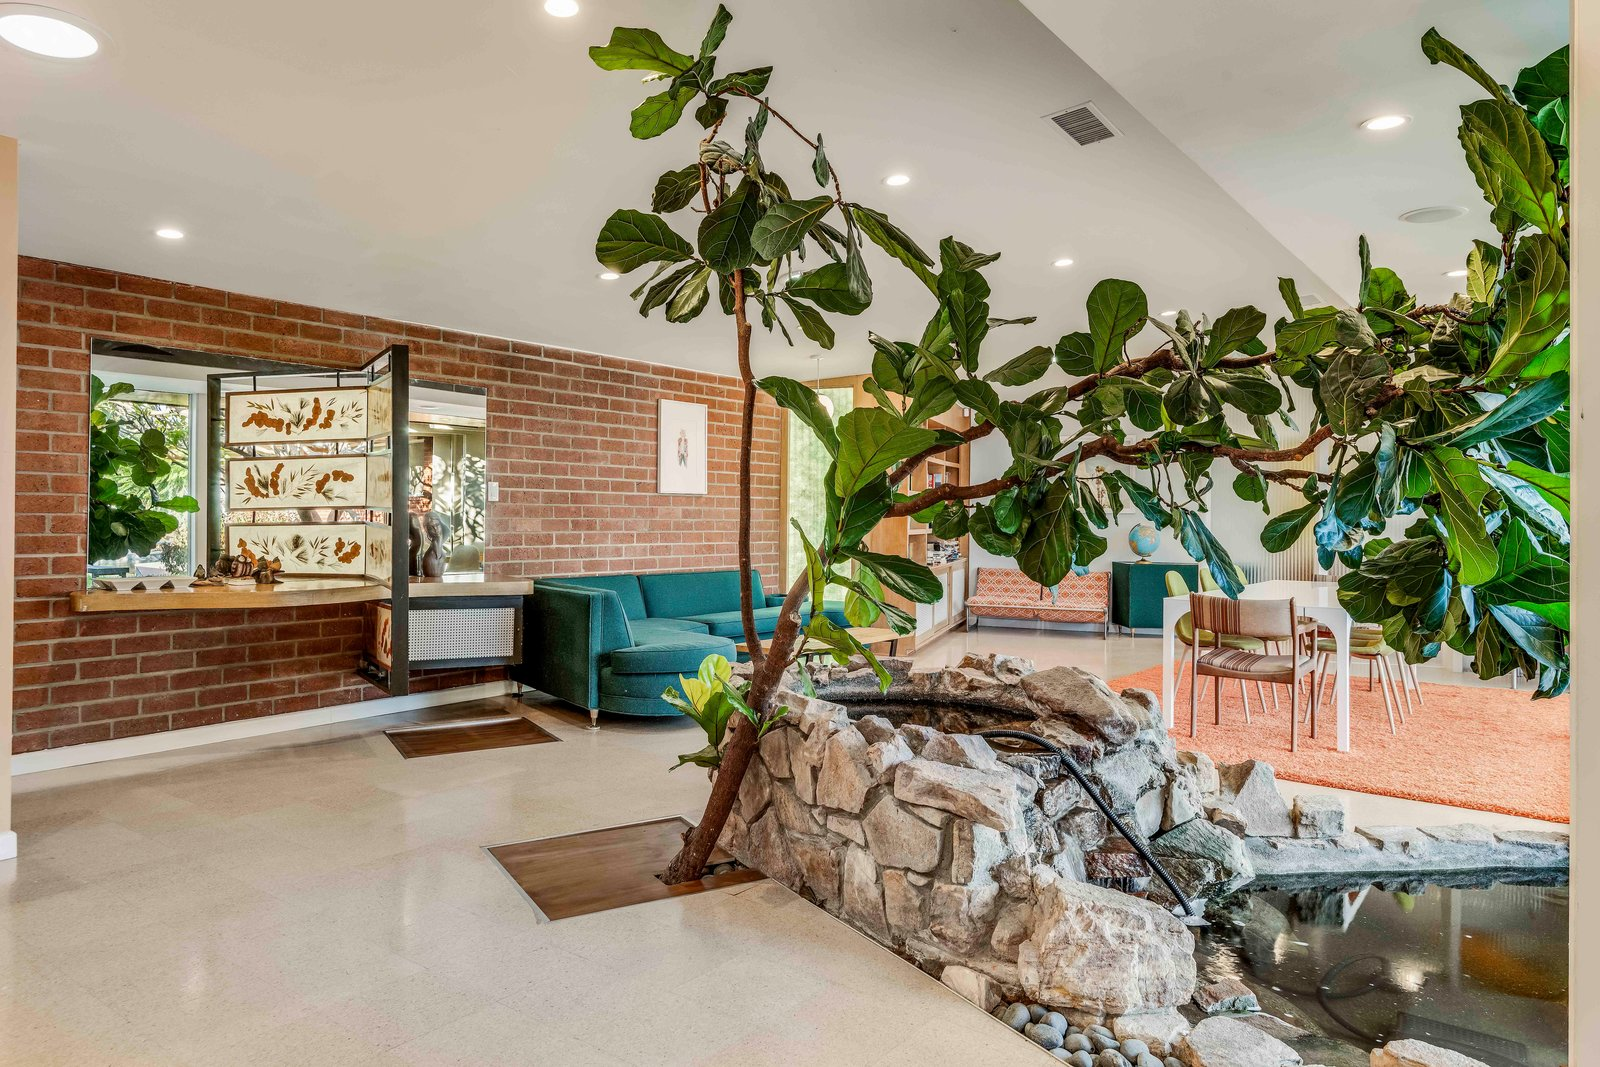 This 1954 House by Powers, Daly, and DeRosa Features a Koi Pond That Flows Under a Glass Wall